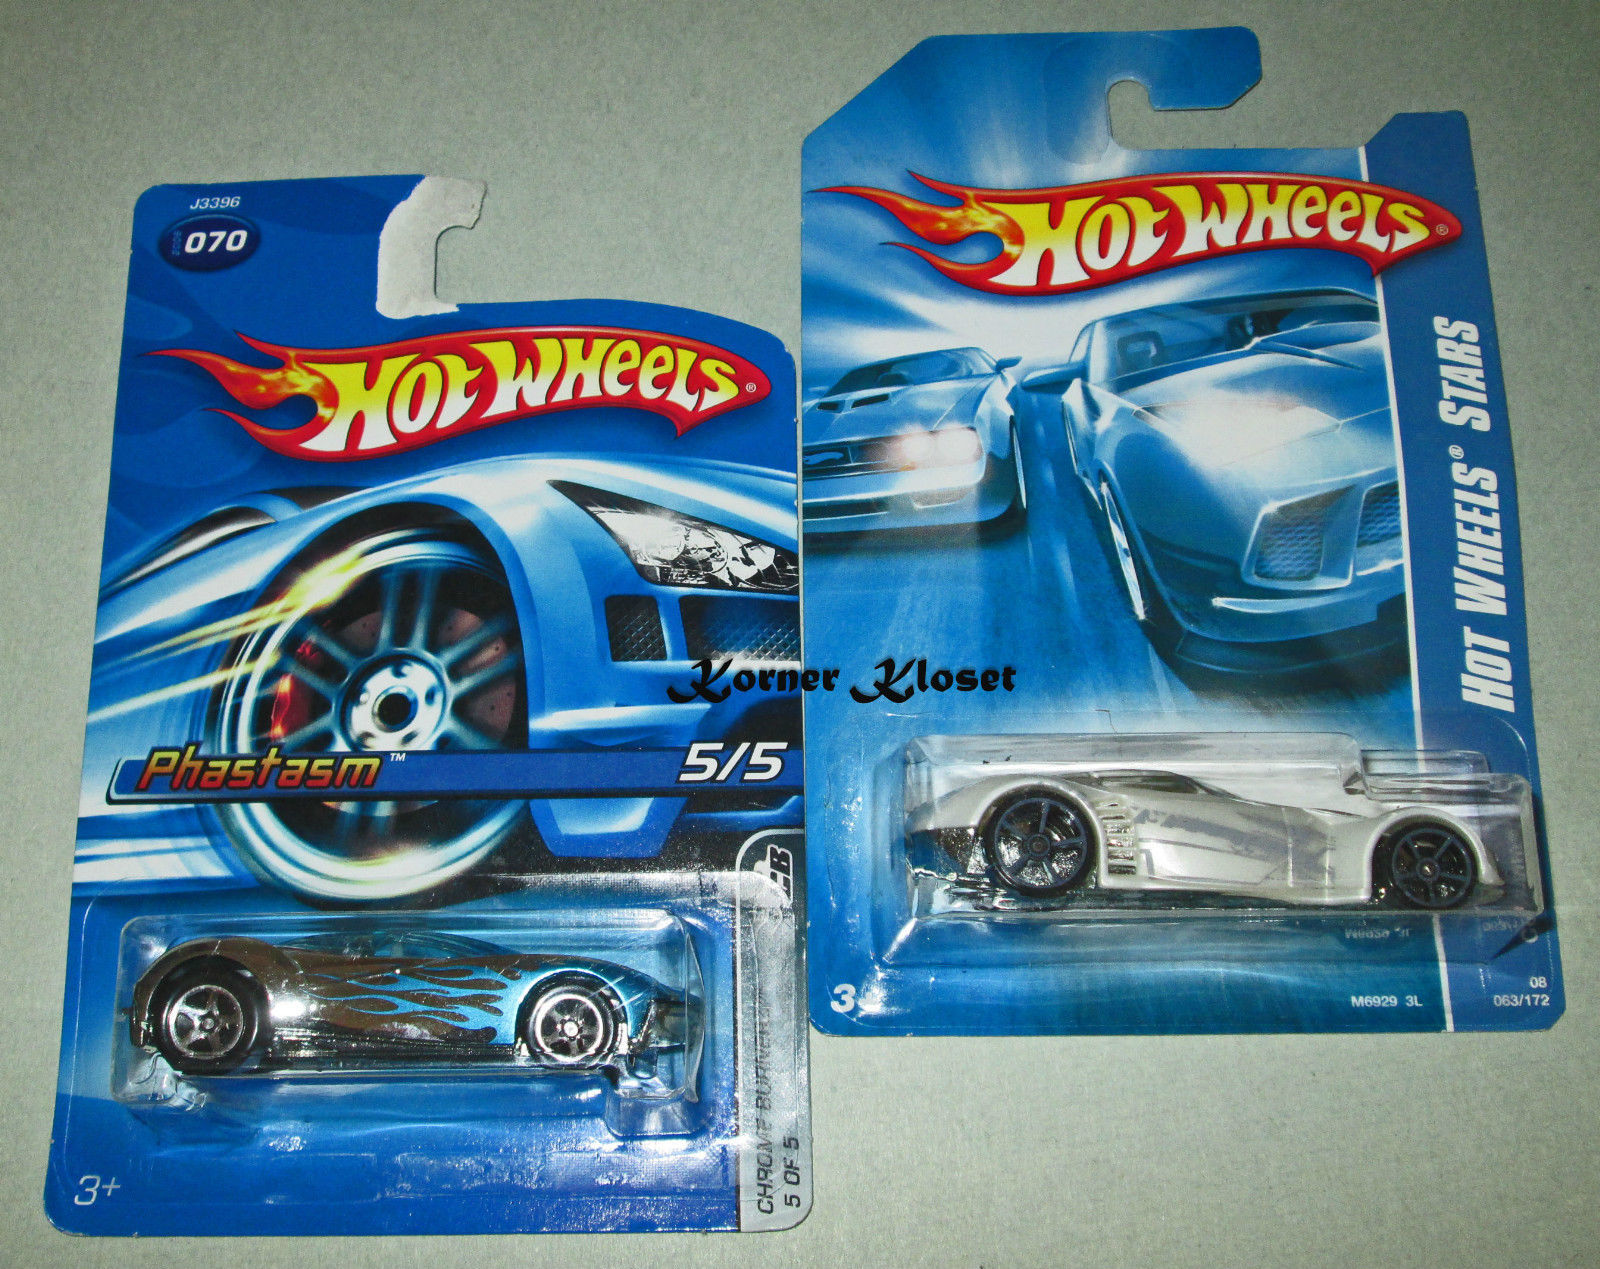 Primary image for Lot of 2 Mattel Hot Wheels Cars - Covelight (Corvette) & Phastasm (Burnerz)  NIP